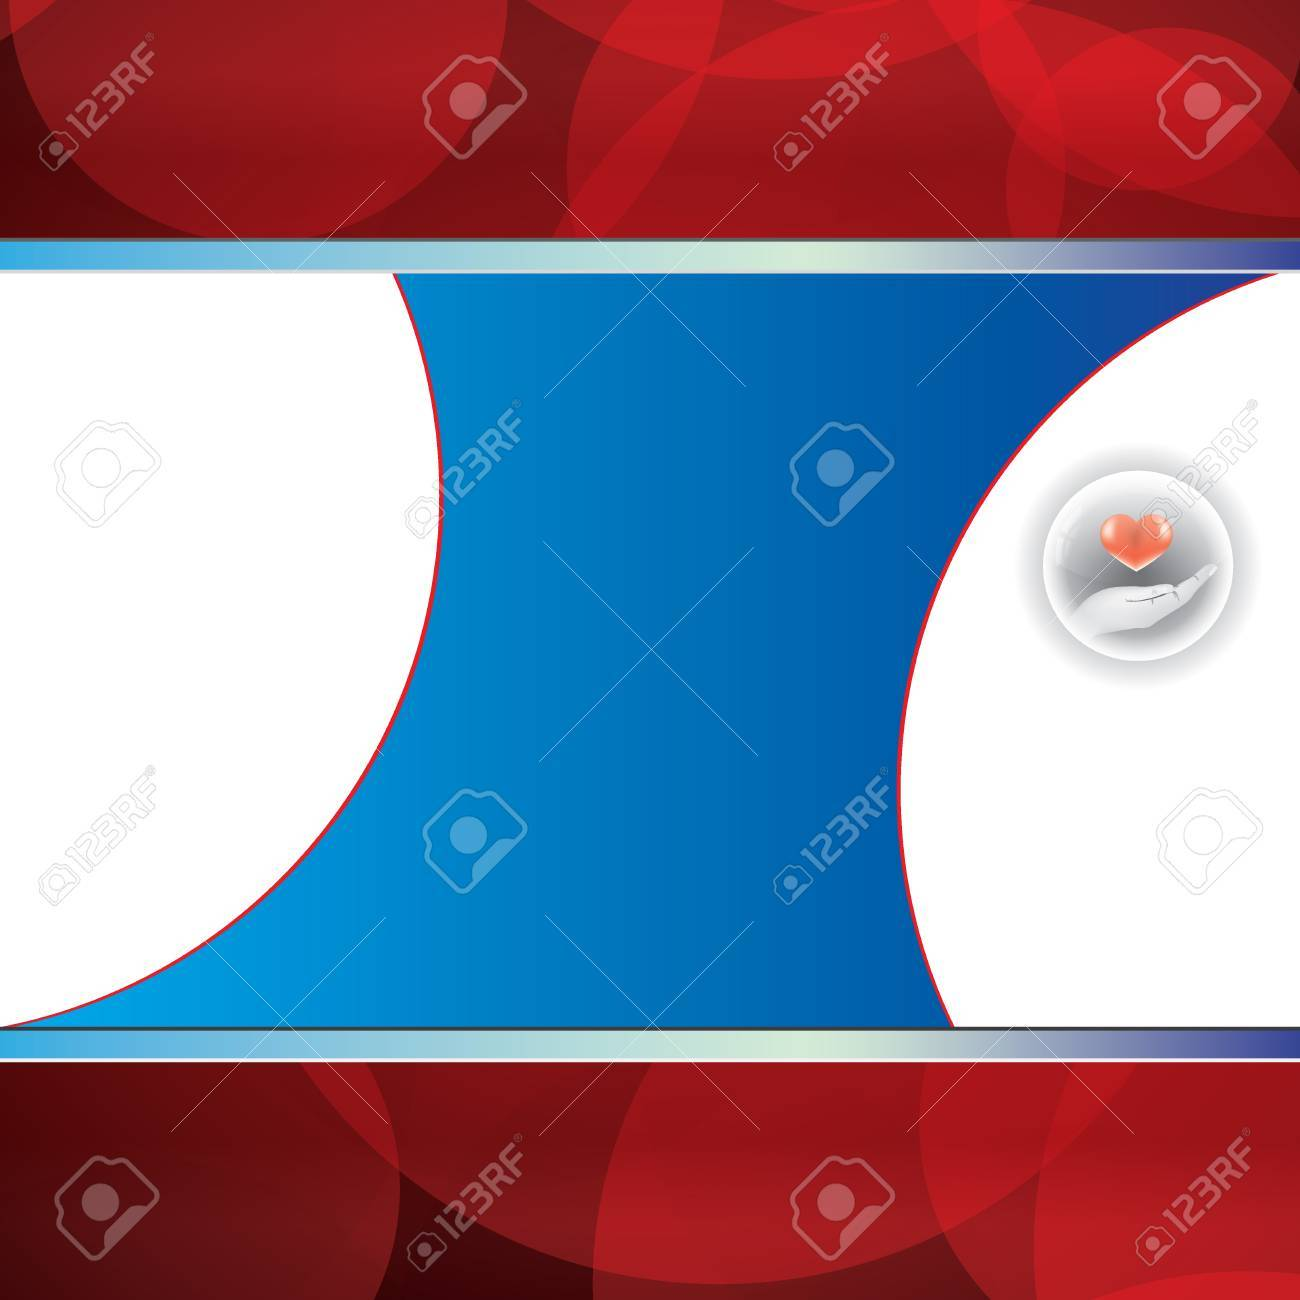 Abstract blue red grid medical background Stock Vector - 18093297